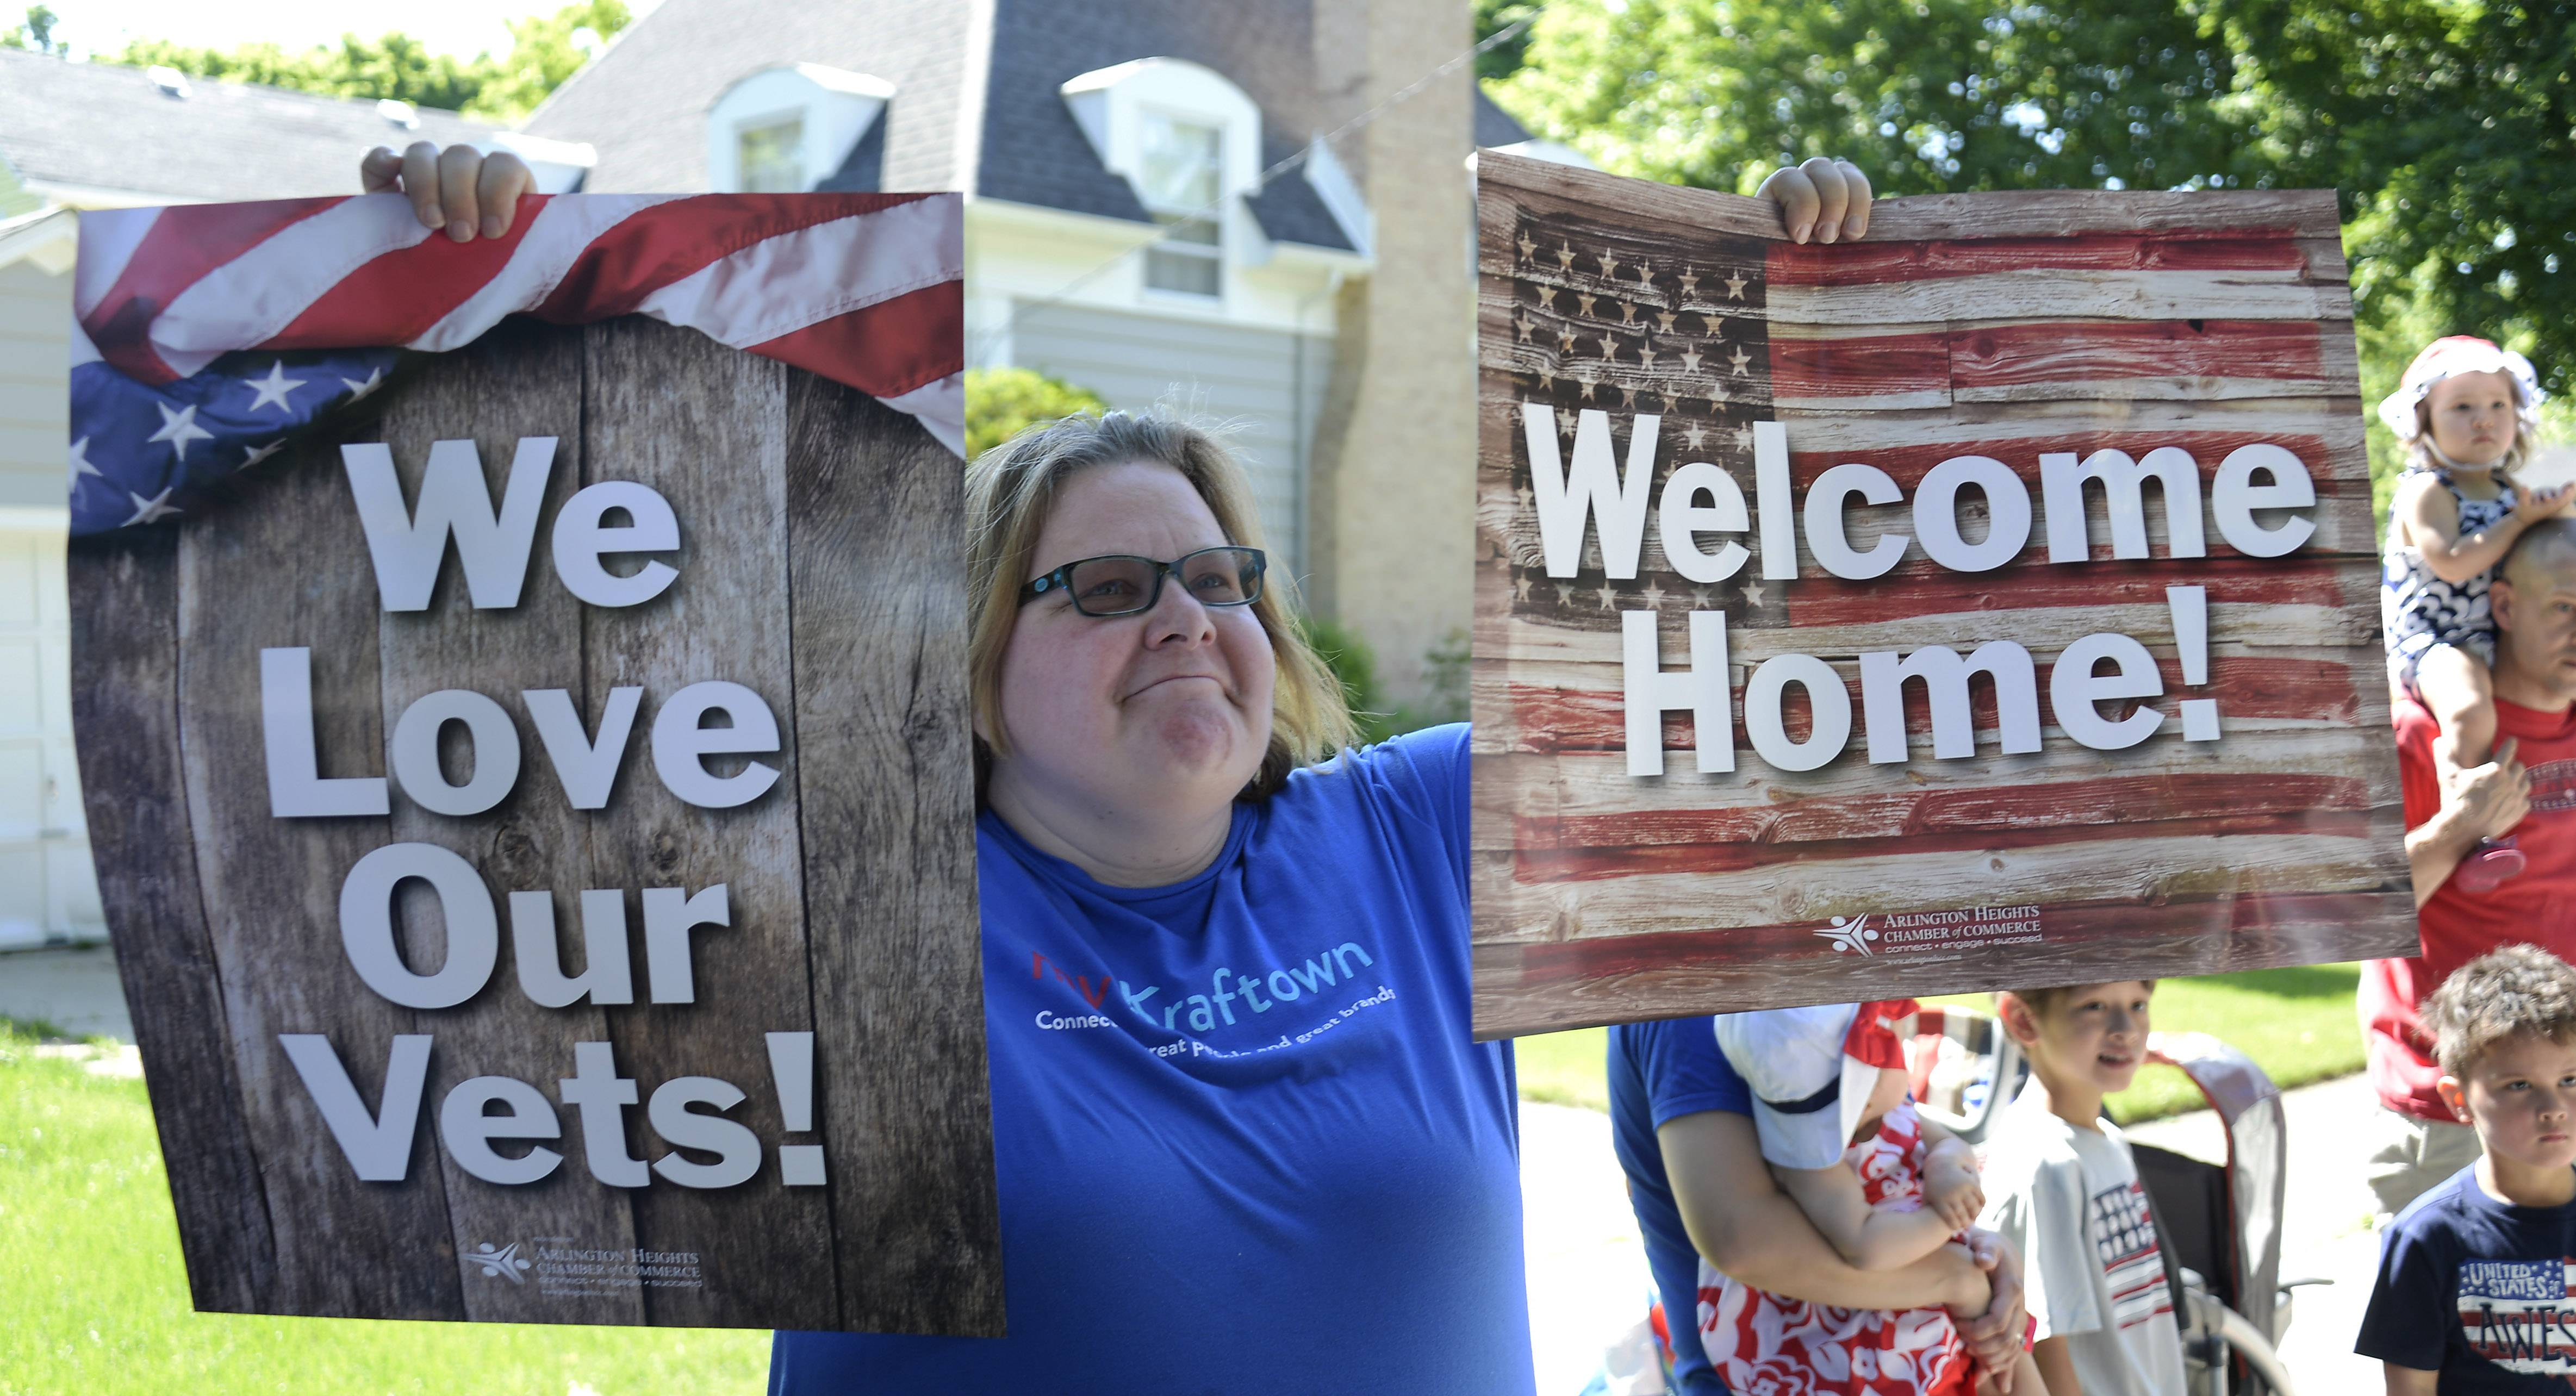 Ann Berrie of Arlington Heights holds up signs reflecting the village's gratitude to its veterans as they stream by Monday in the Arlington Heights Memorial Day parade.